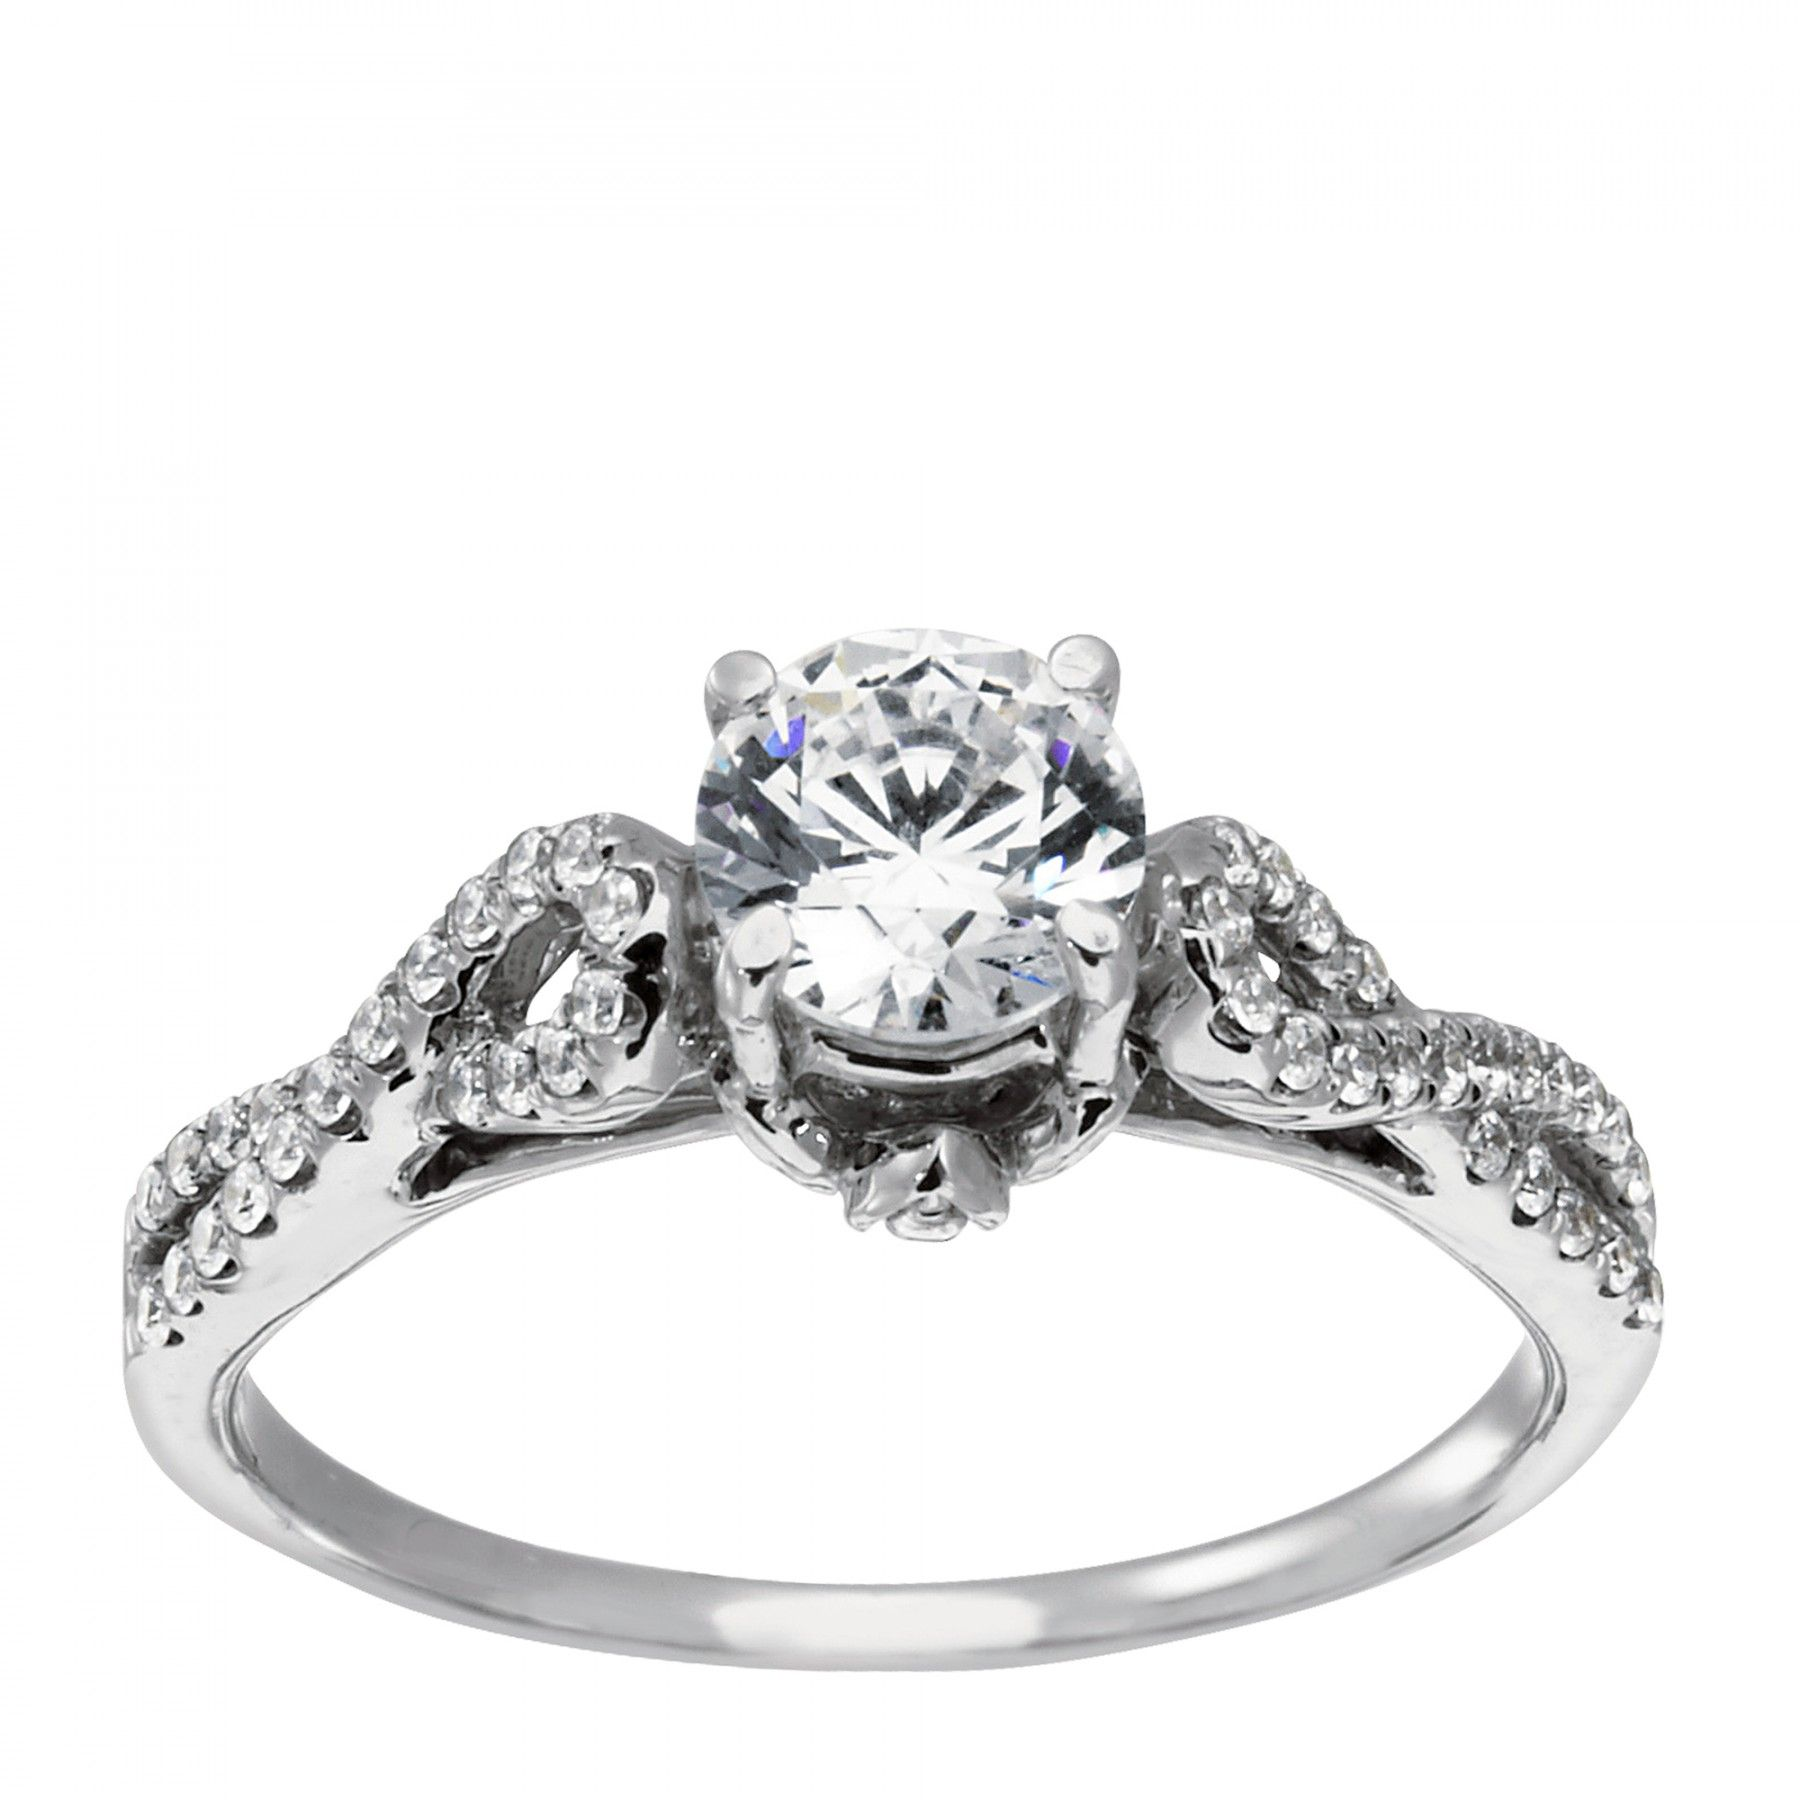 Luz Eterna Engagement Ring 10k Value Collection Engagement Rings Affordable Lab Created Engagement Rings Petite Engagement Ring